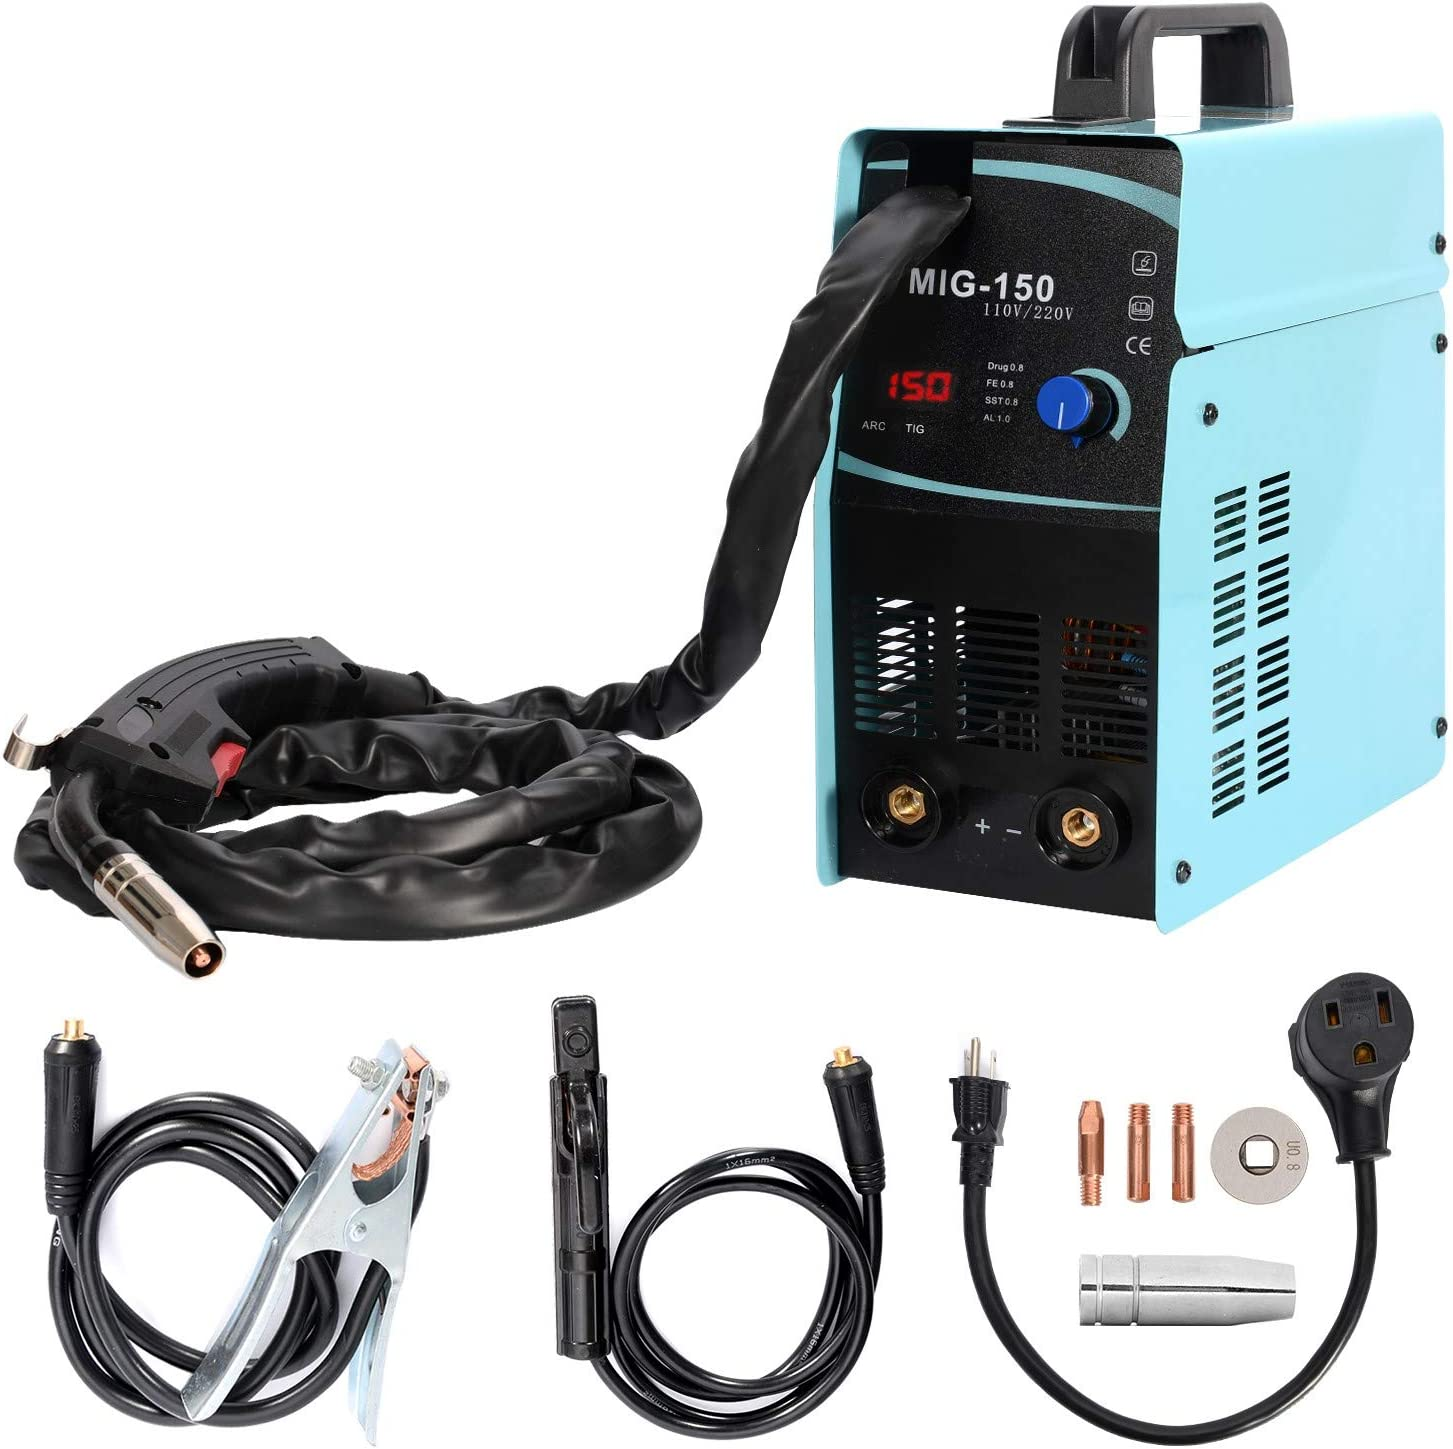 Best 110v Mig Welder (MIG, TIG, Stick) - Our 5 Reviews for 2020 2